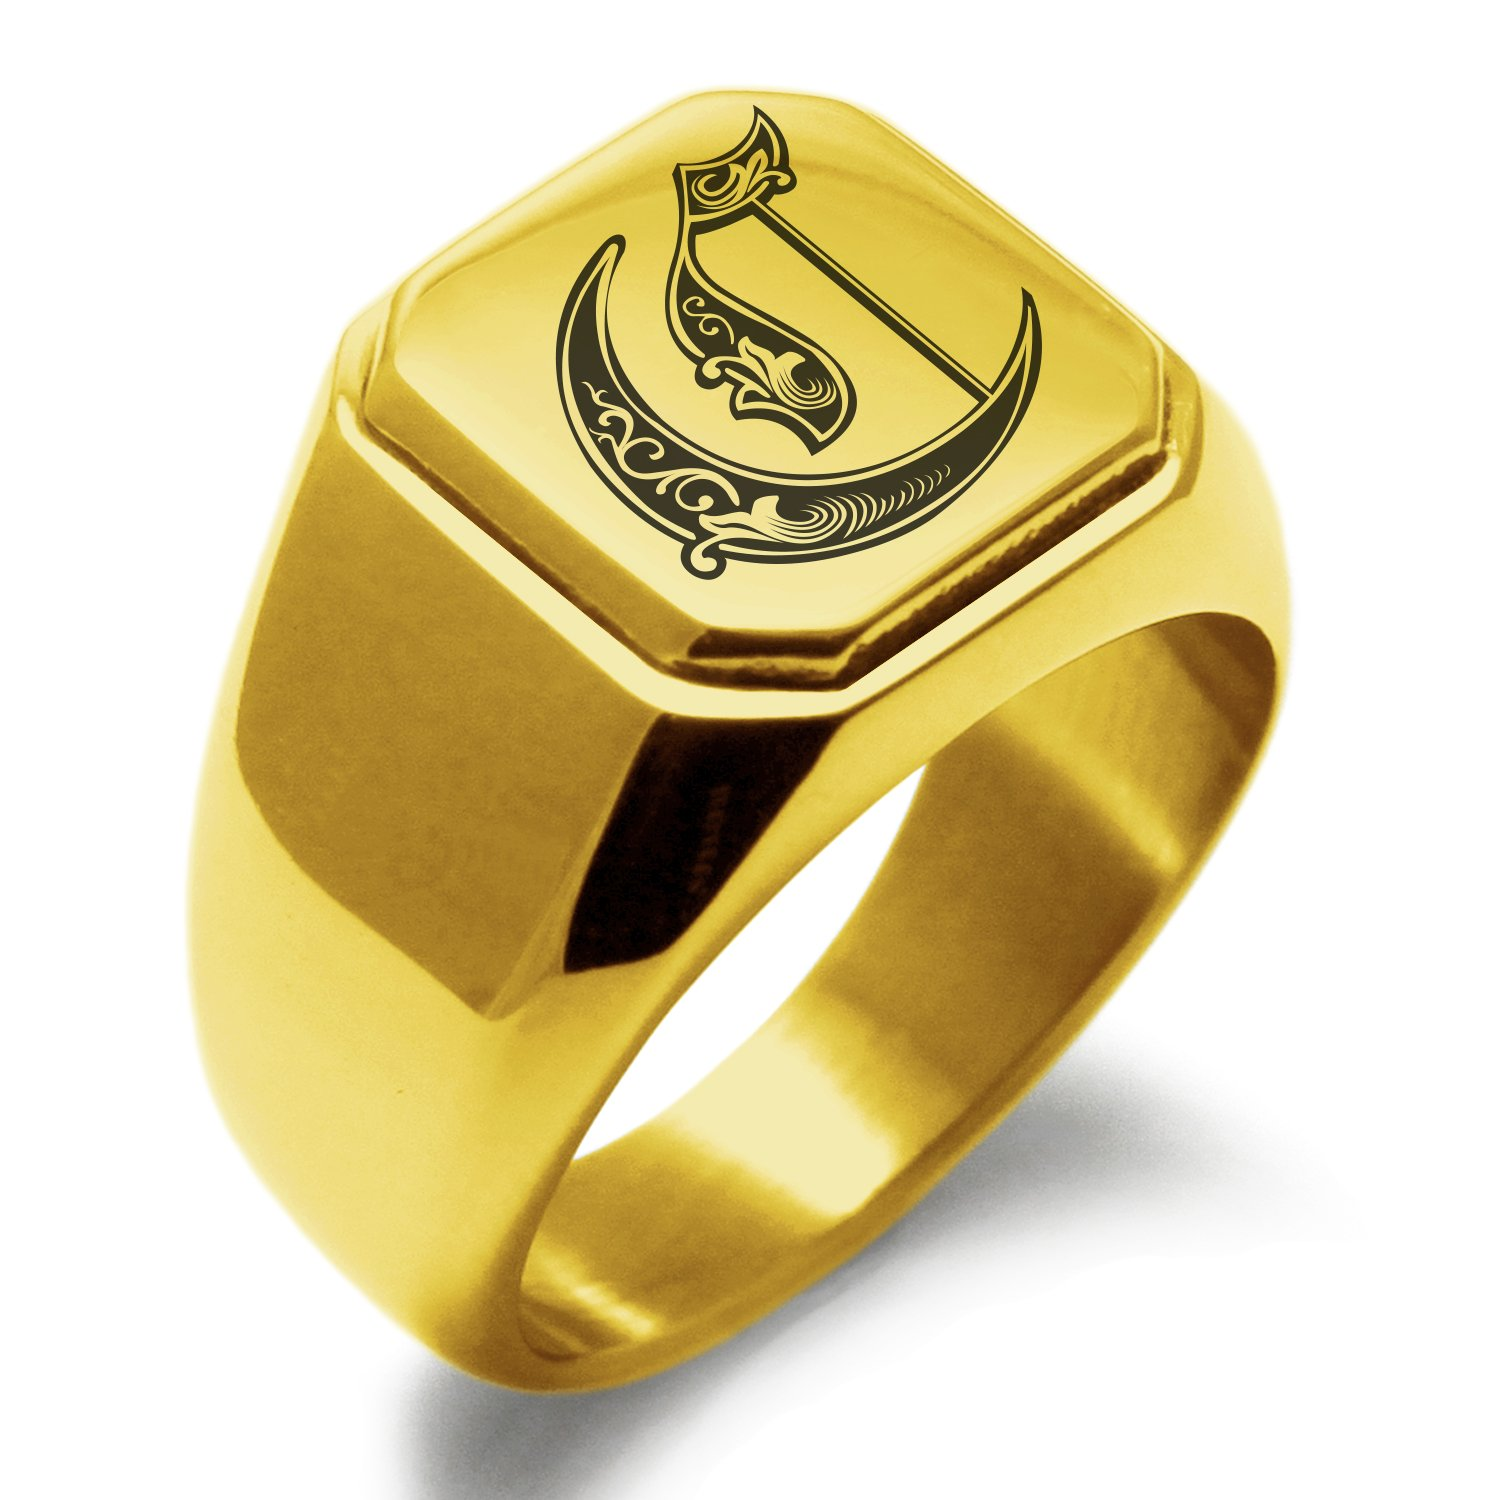 Stainless Steel Letter C Alphabet Initial Royal Monogram Engraved Square Flat Top Biker Style Polished Ring